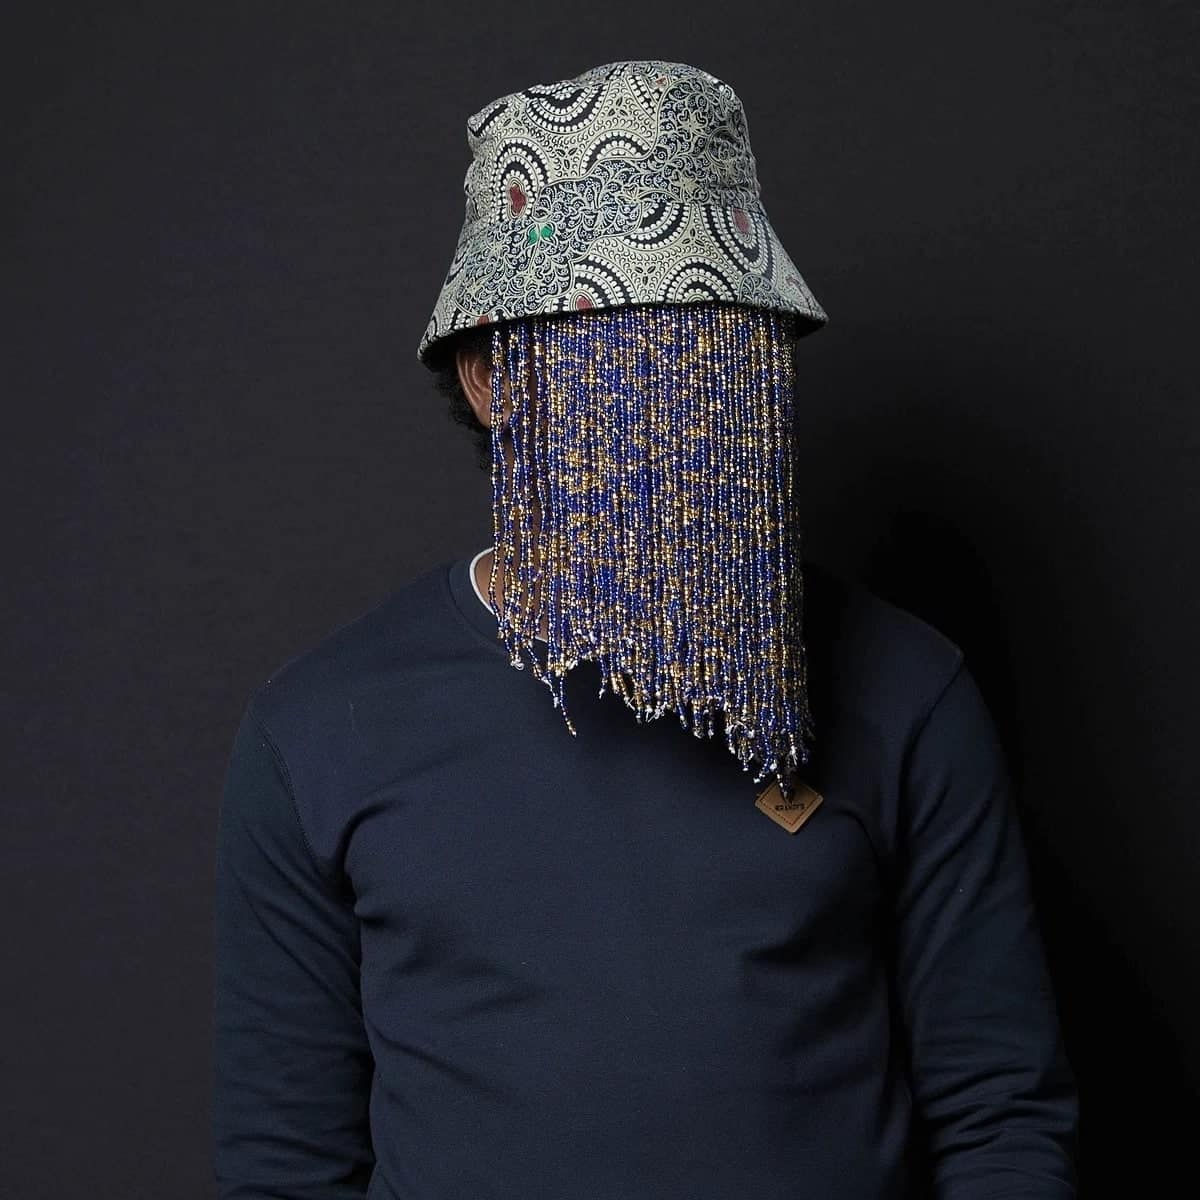 Anas' near-death experience in fresh Malawi exposé